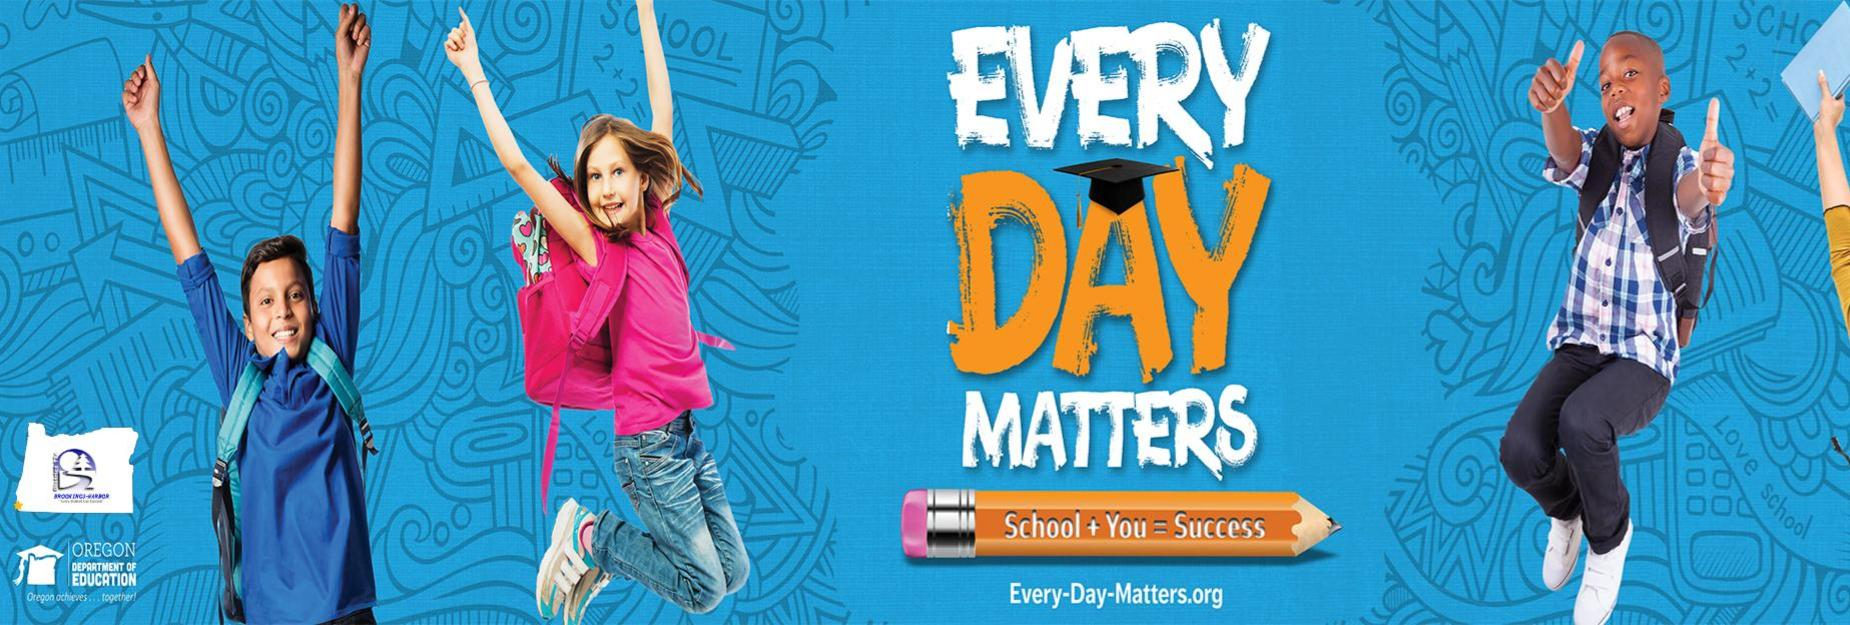 Every Day Matters attendance campaign